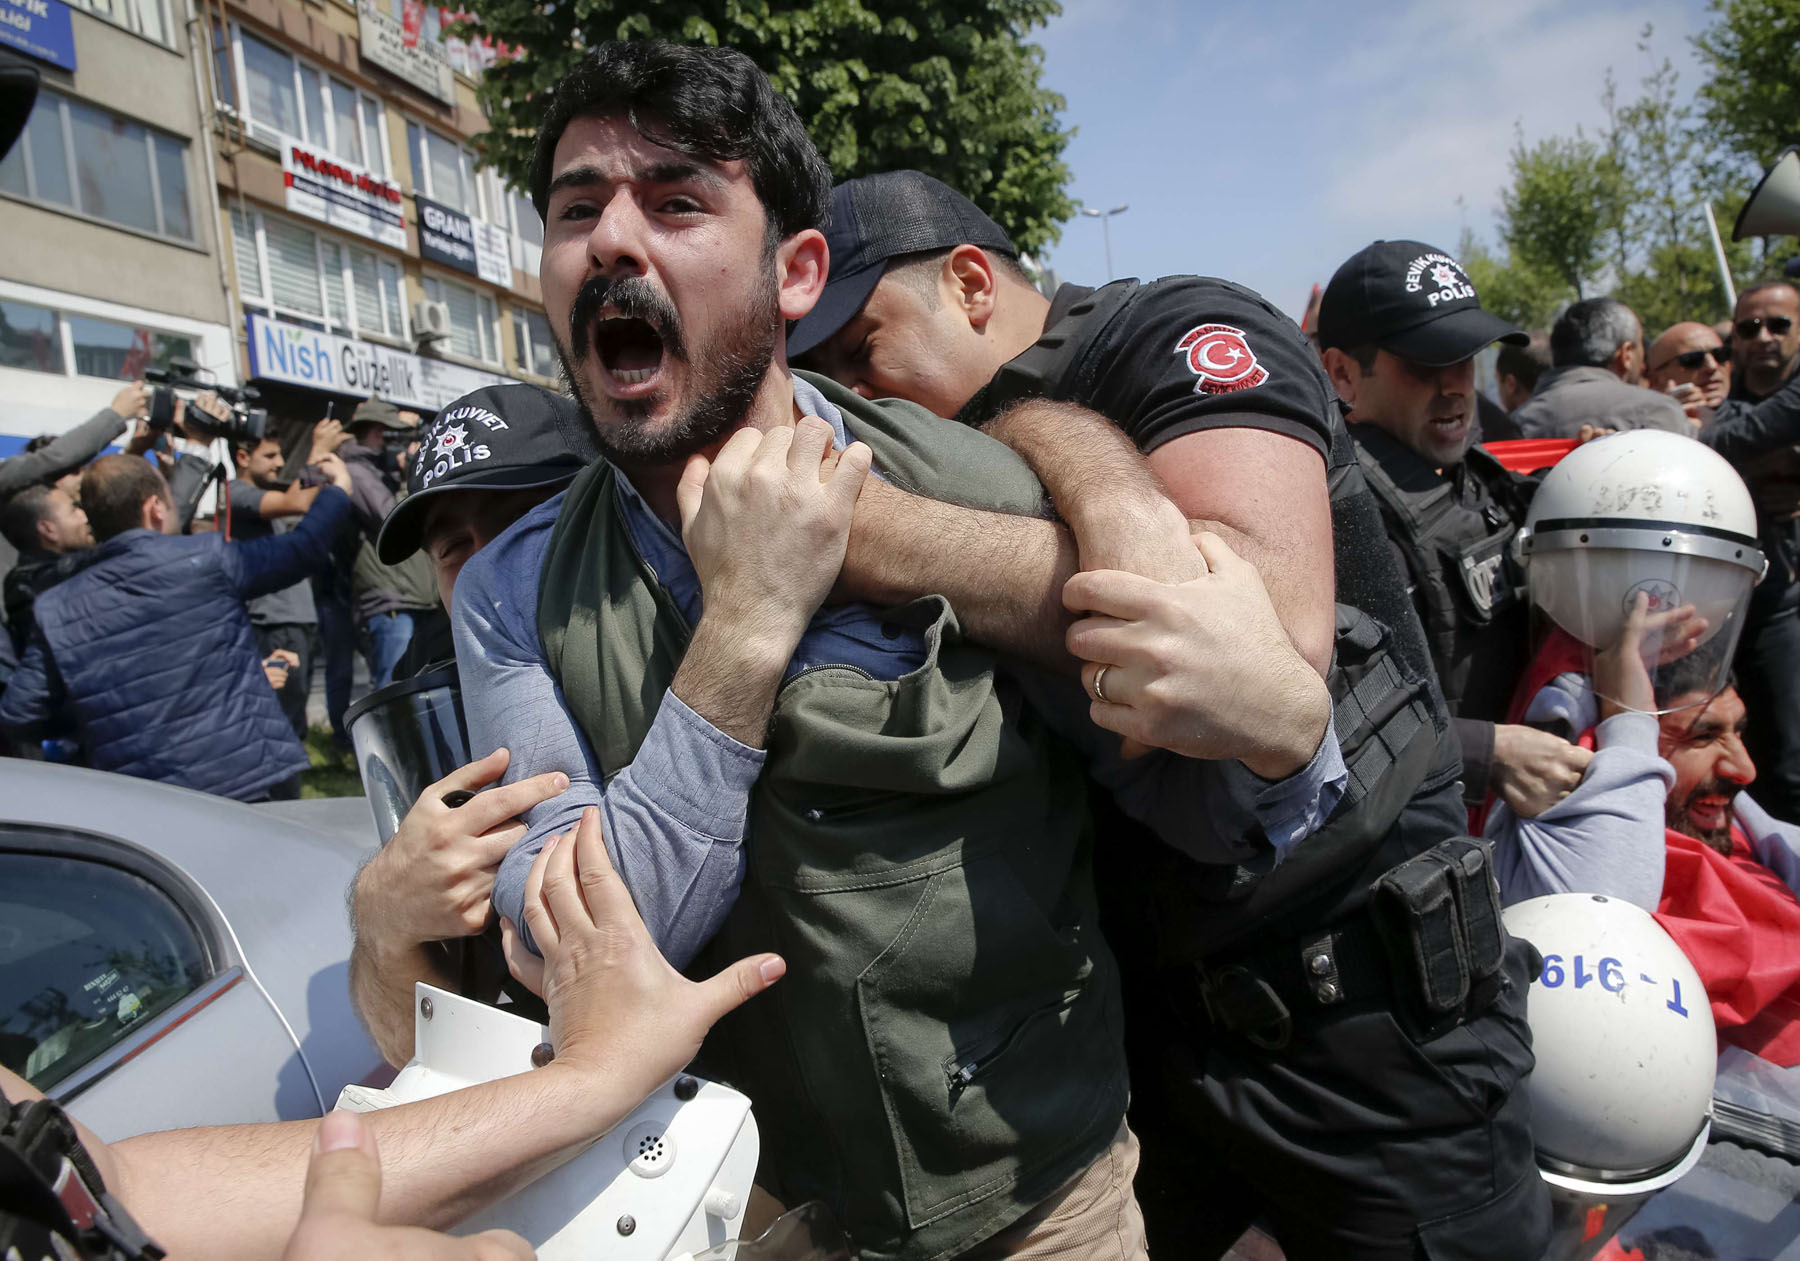 A demonstrator screams as police officers grab him during a protest in Istanbul. (AP)